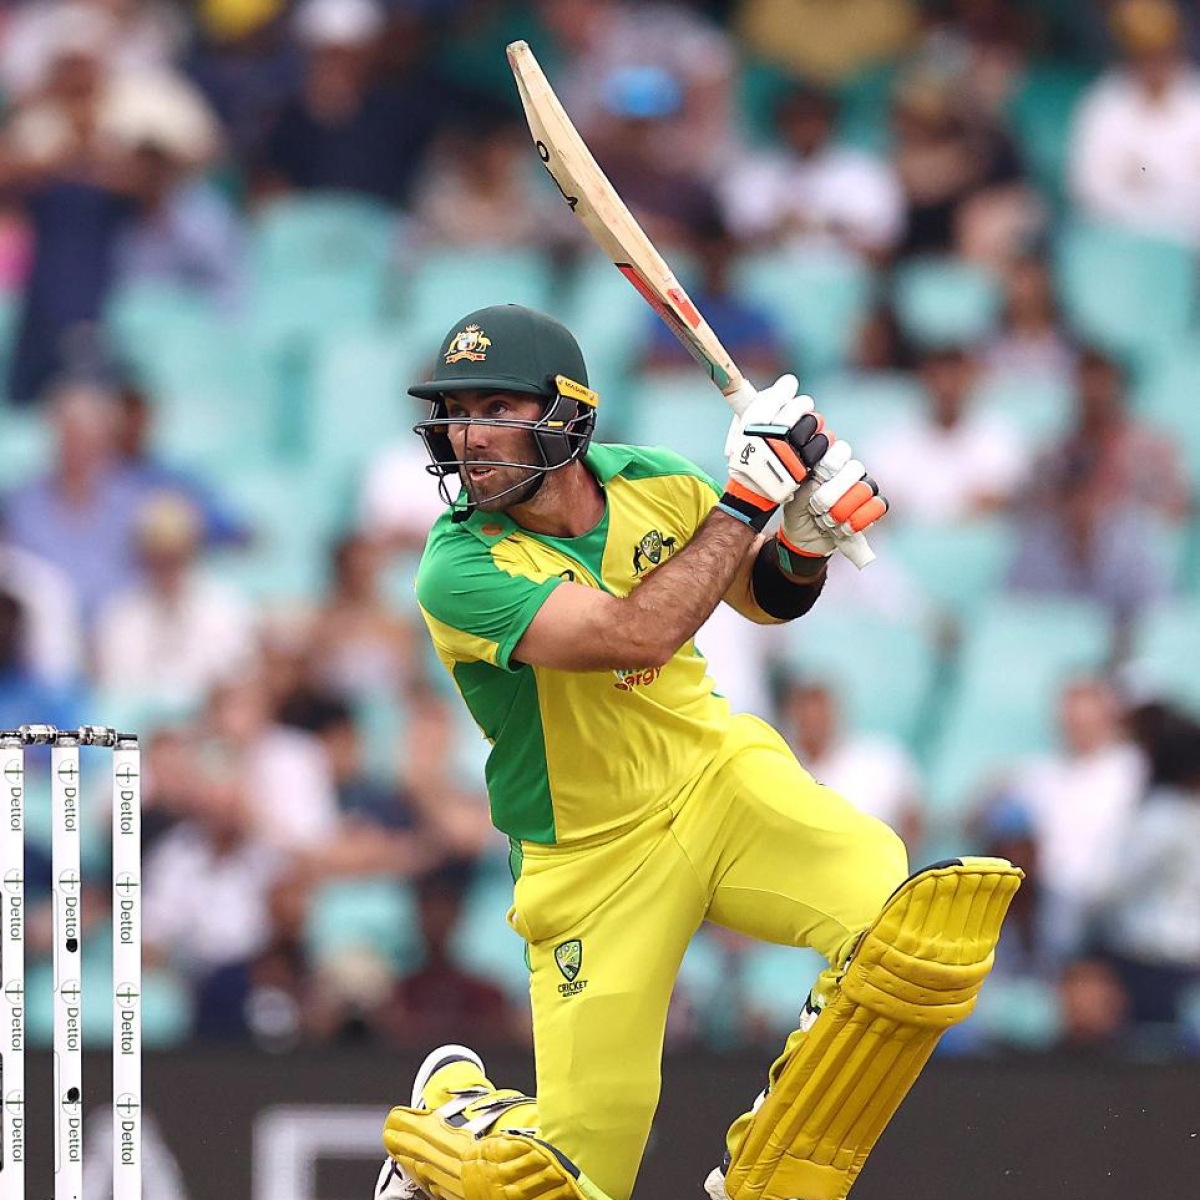 IPL 2021: Felt good, says Glenn Maxwell after ending his drought of sixes